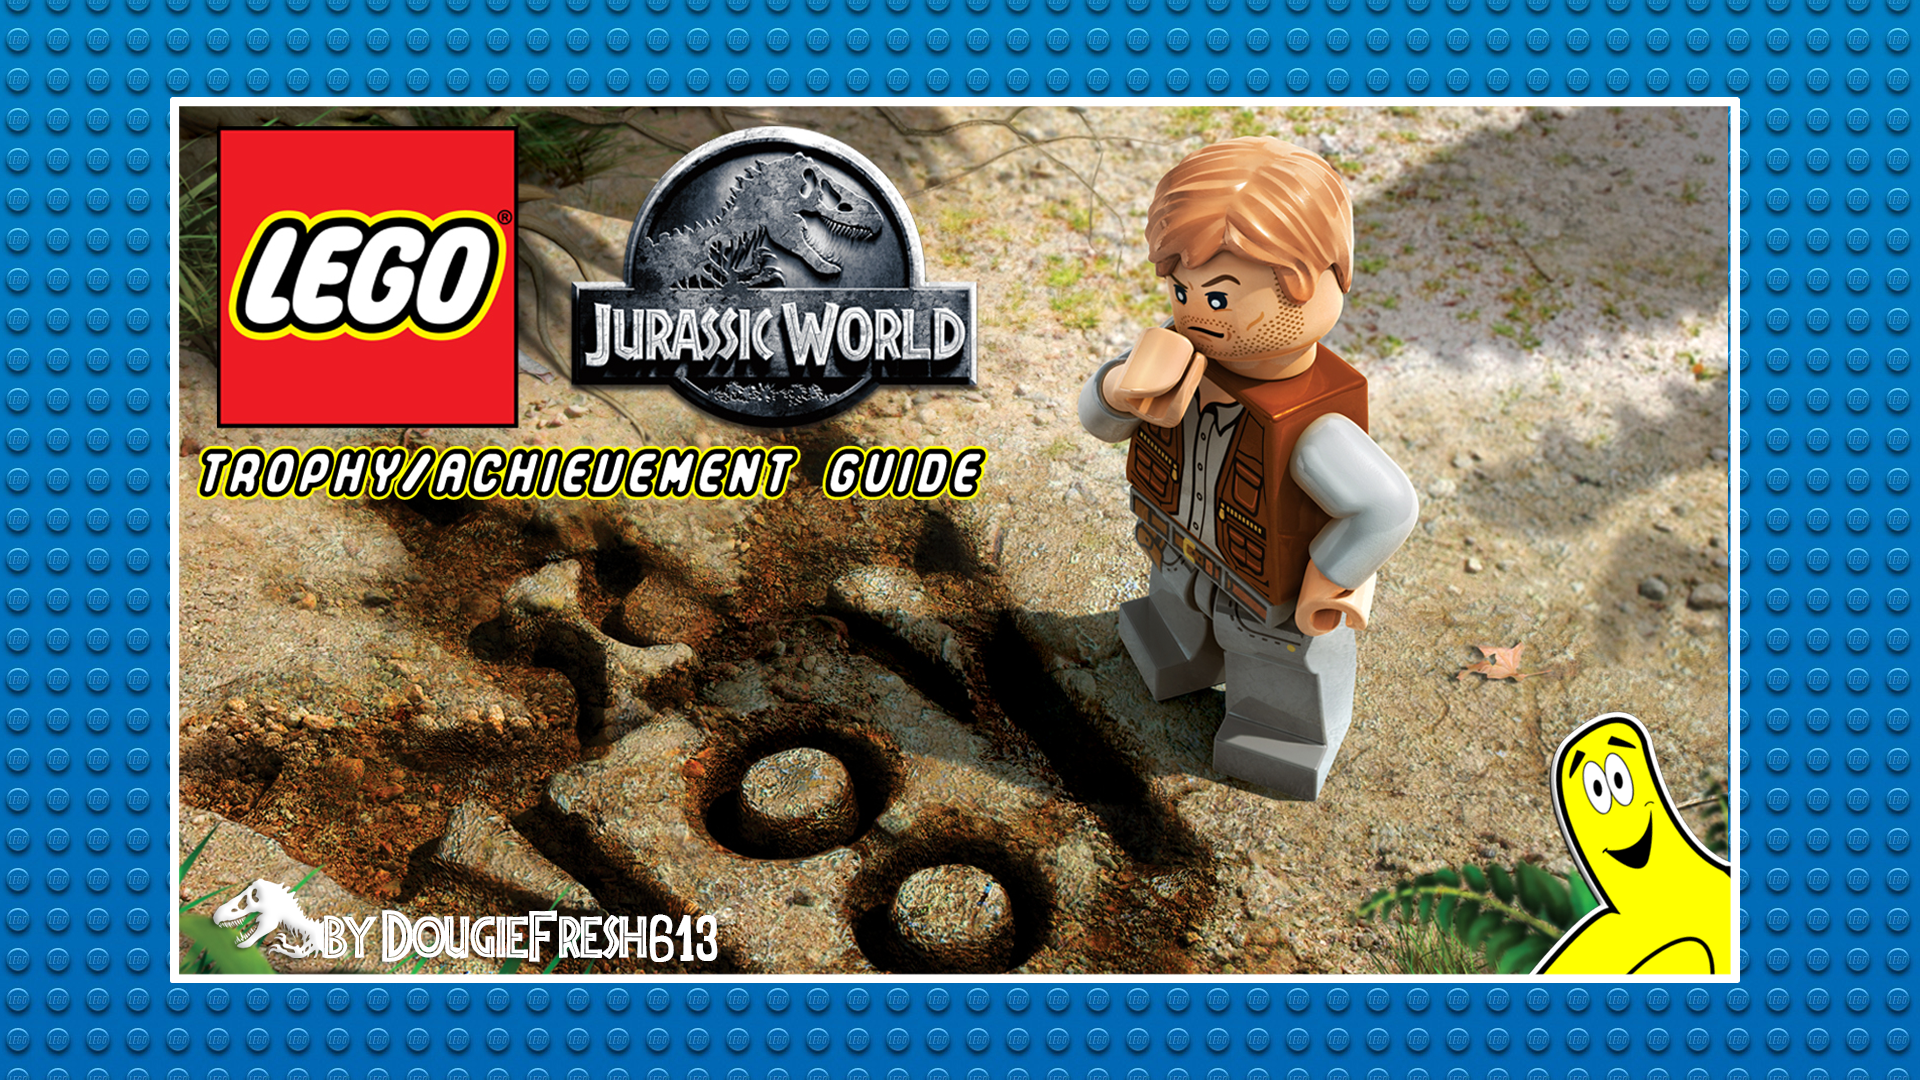 Lego jurassic world trophyachievement guide htg happy thumbs legojurassicparkfeatured gumiabroncs Gallery